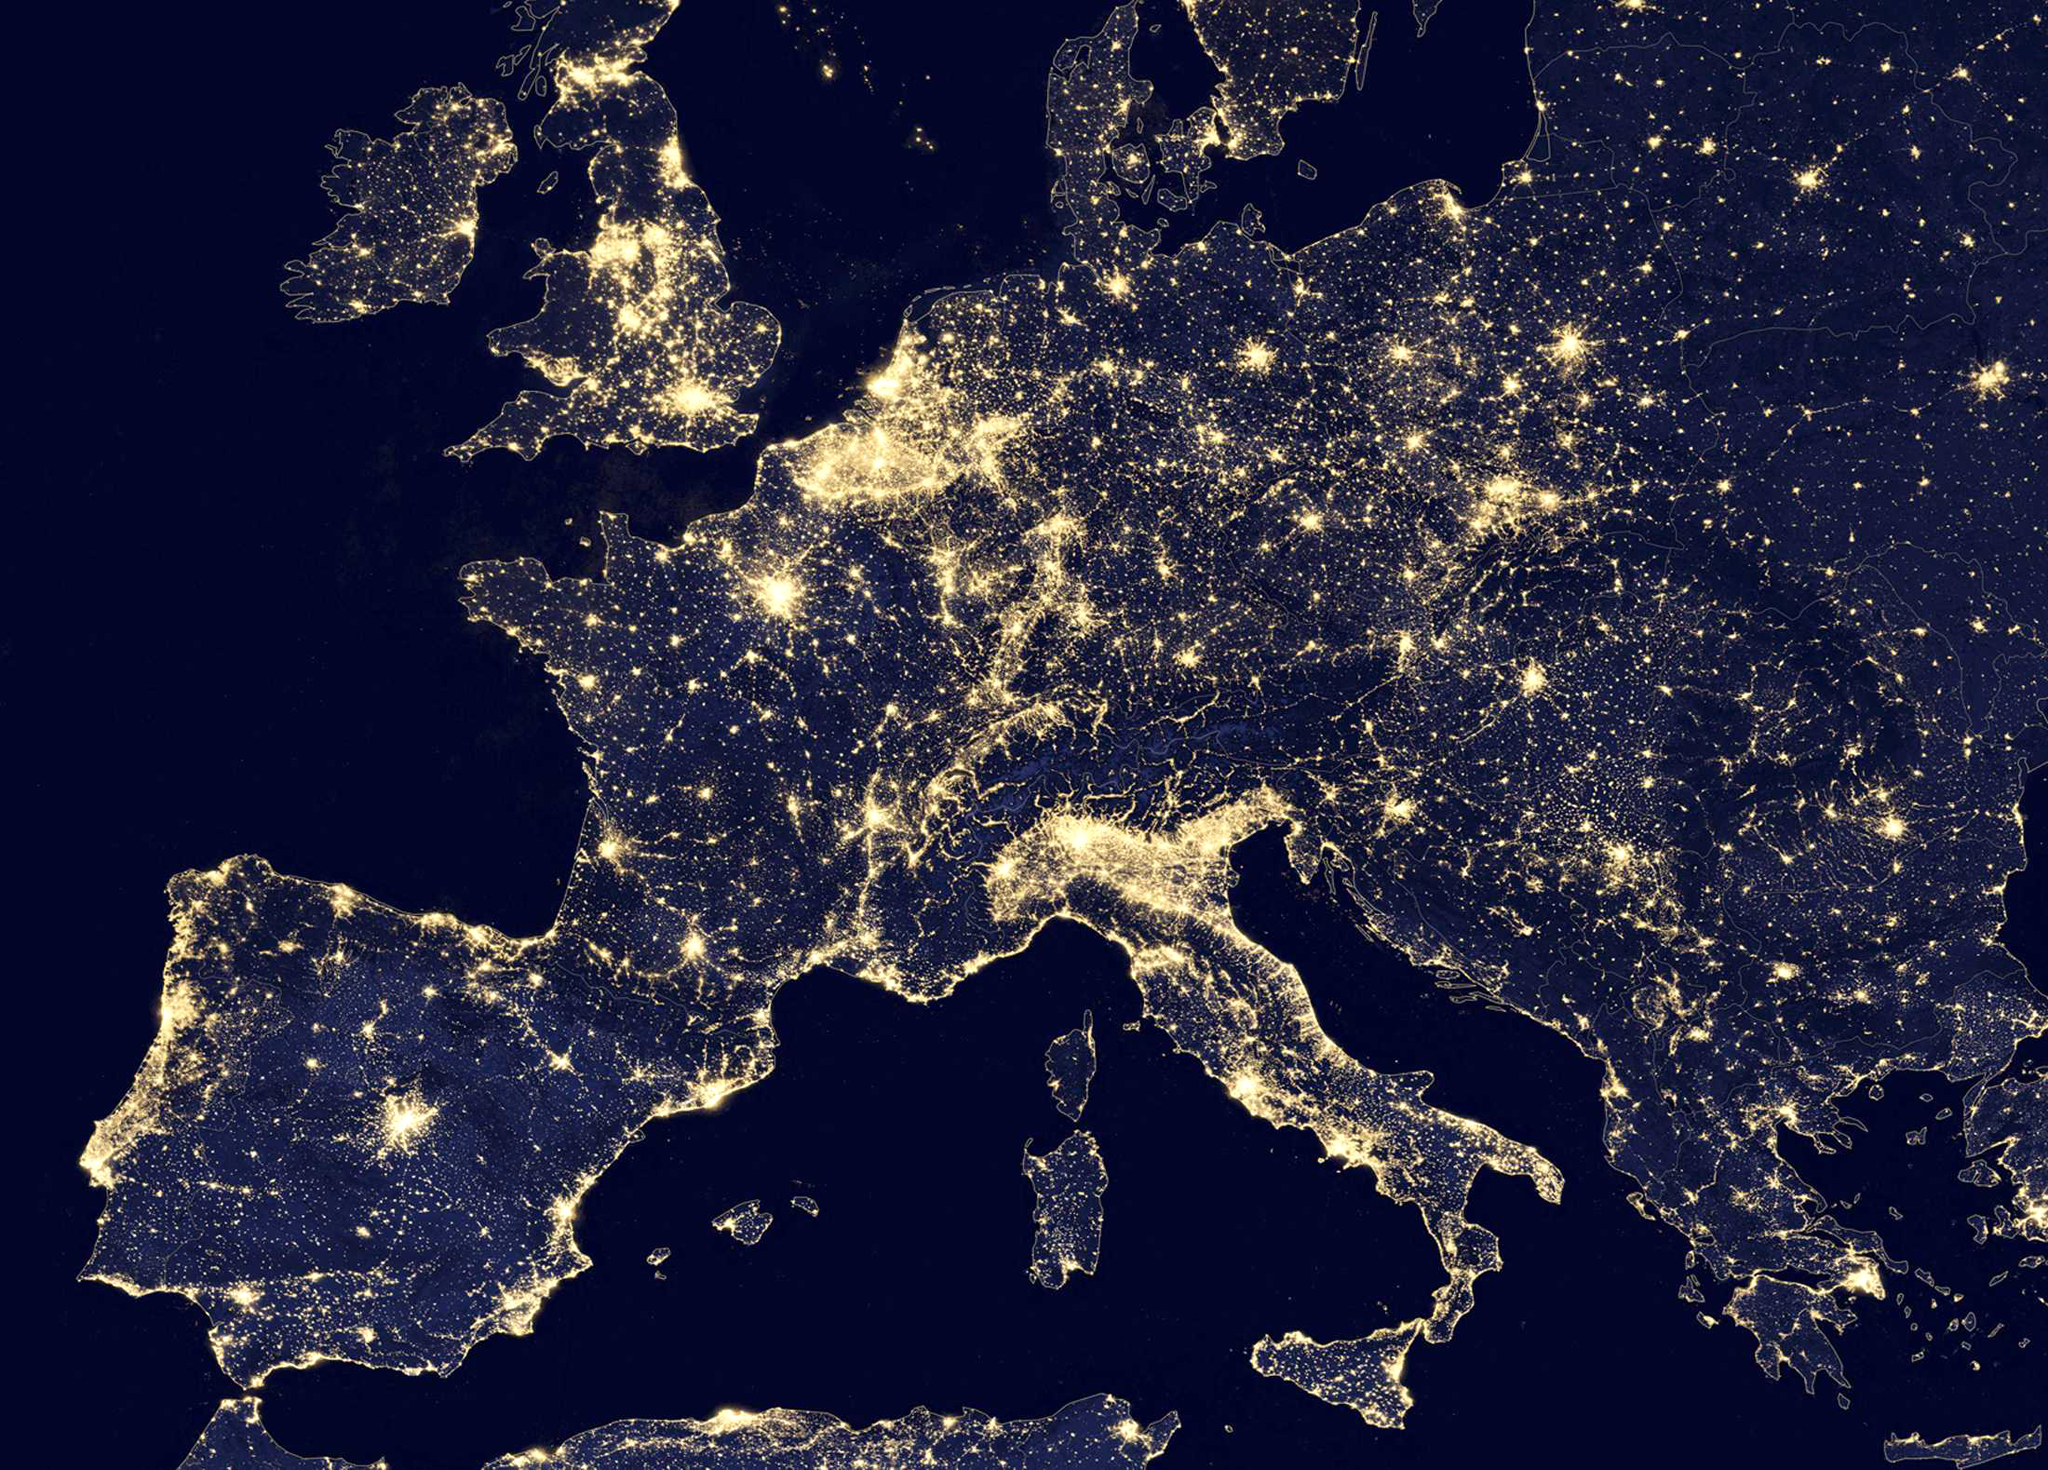 A nighttime view of Europe made possible by the �day-night band� of the Visible Infrared Imaging Radiometer Suite (VIIRS) is seen in a global composite assembled from data acquired by the Suomi National Polar-orbiting Partnership (Suomi NPP) satellite in 2012 and released by NASA October 2, 2014 . The VIIRS detects light in a range of wavelengths from green to near-infrared and uses filtering techniques to observe dim signals such as city lights, wildfires, and gas flares. REUTERS/NASA/Handout (UNITED STATES - Tags: ENVIRONMENT ENERGY SCIENCE TECHNOLOGY) FOR EDITORIAL USE ONLY. NOT FOR SALE FOR MARKETING OR ADVERTISING CAMPAIGNS